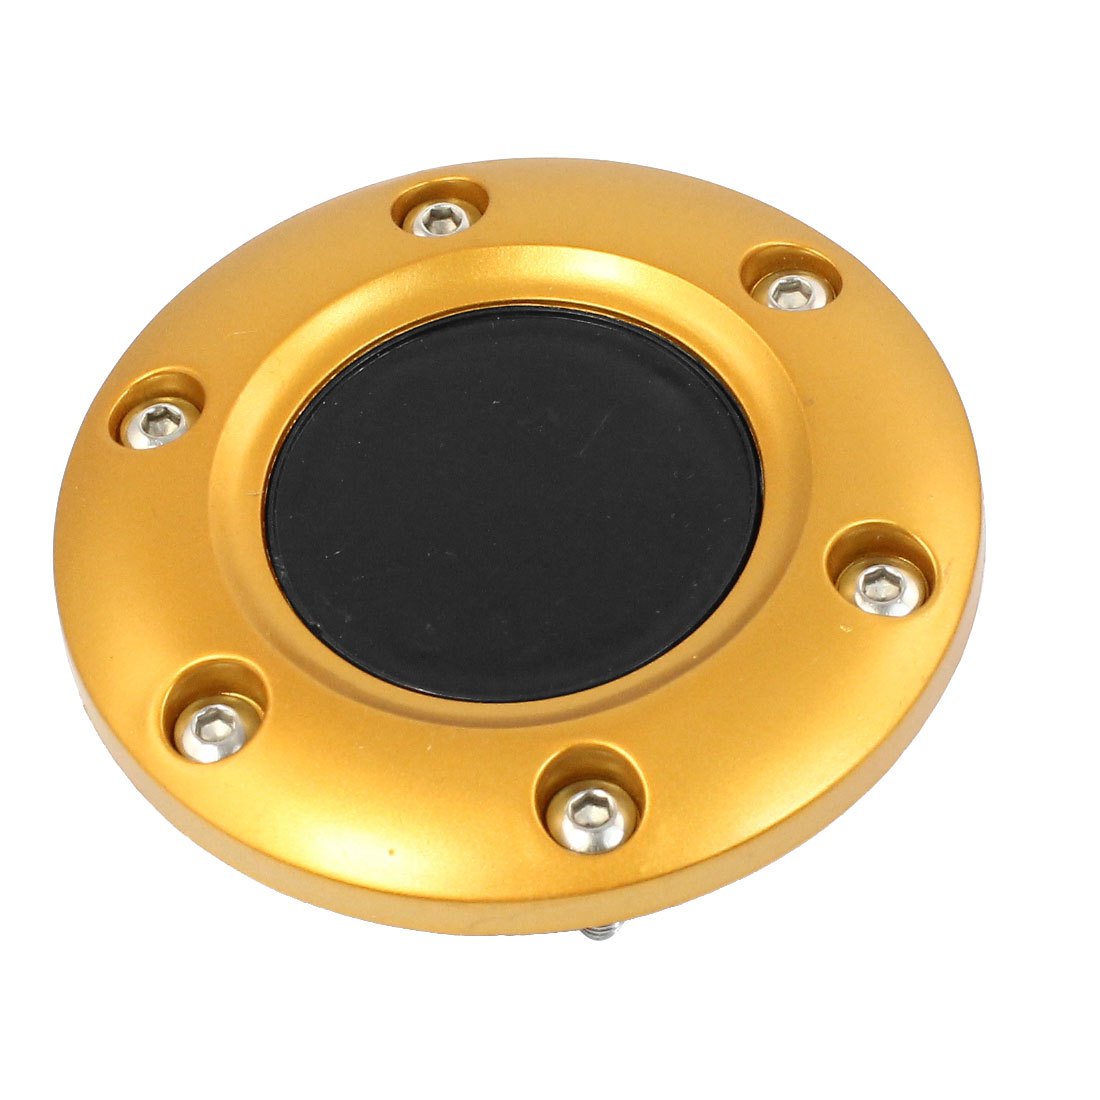 "Gold Tone 3.3"" Dia Car Plastic Steering Wheels Horn Button"